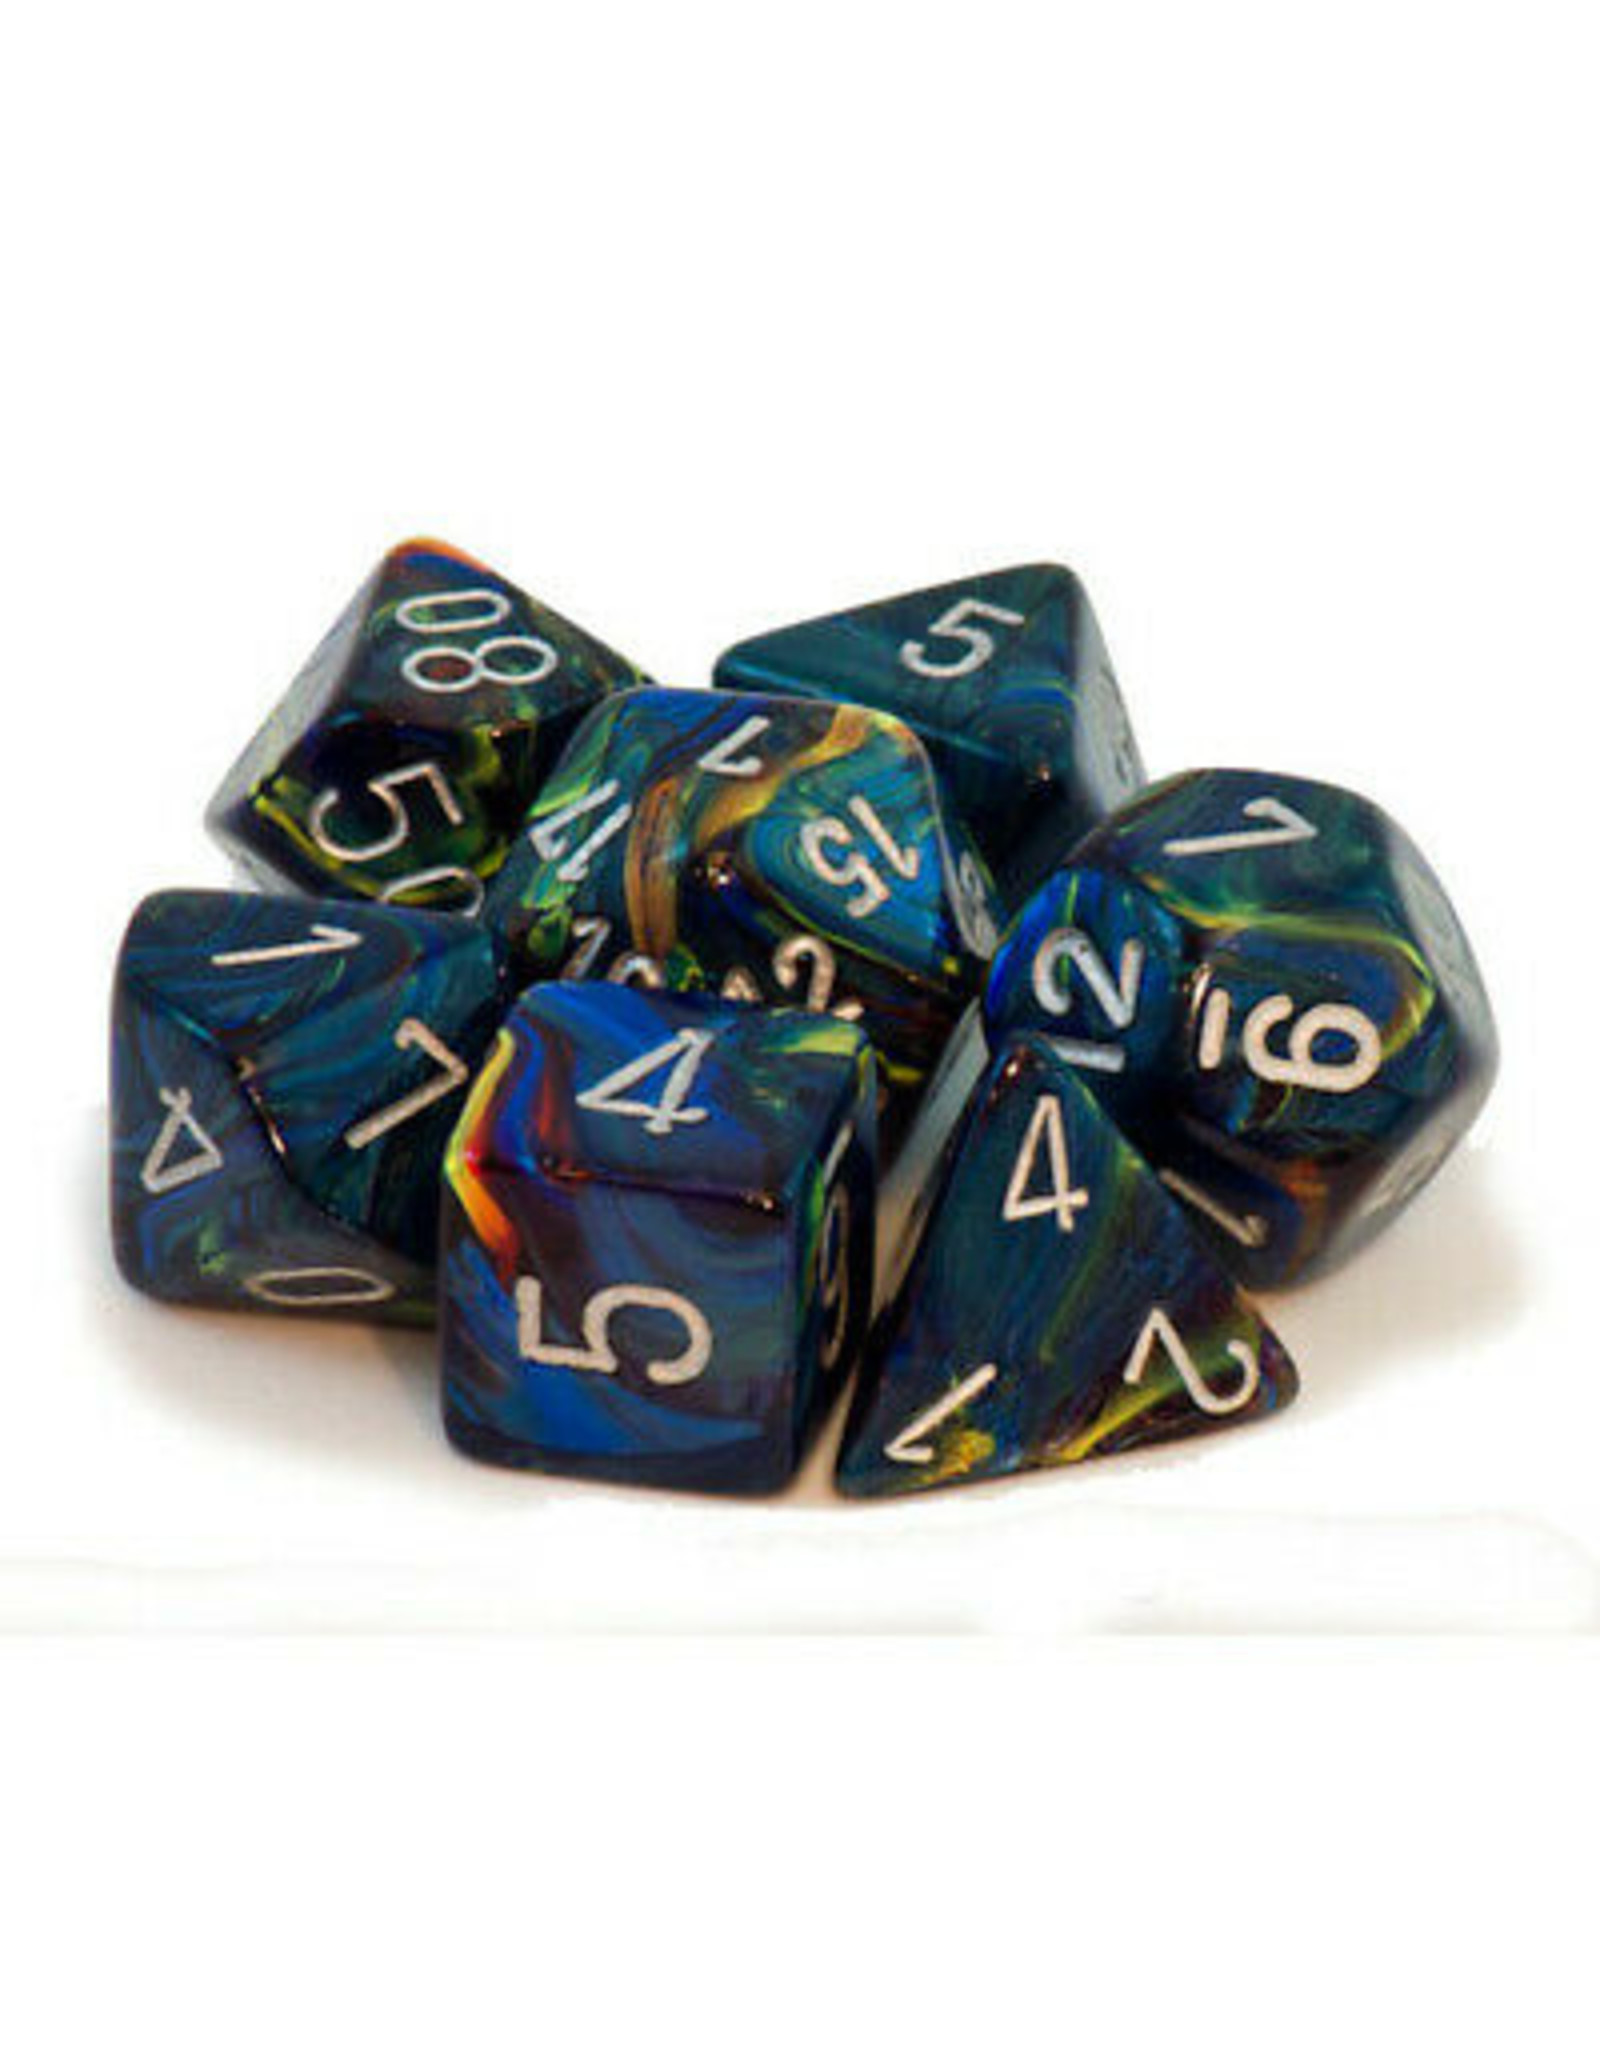 Chessex 7-Set Polyhedral Festive Green/Silver